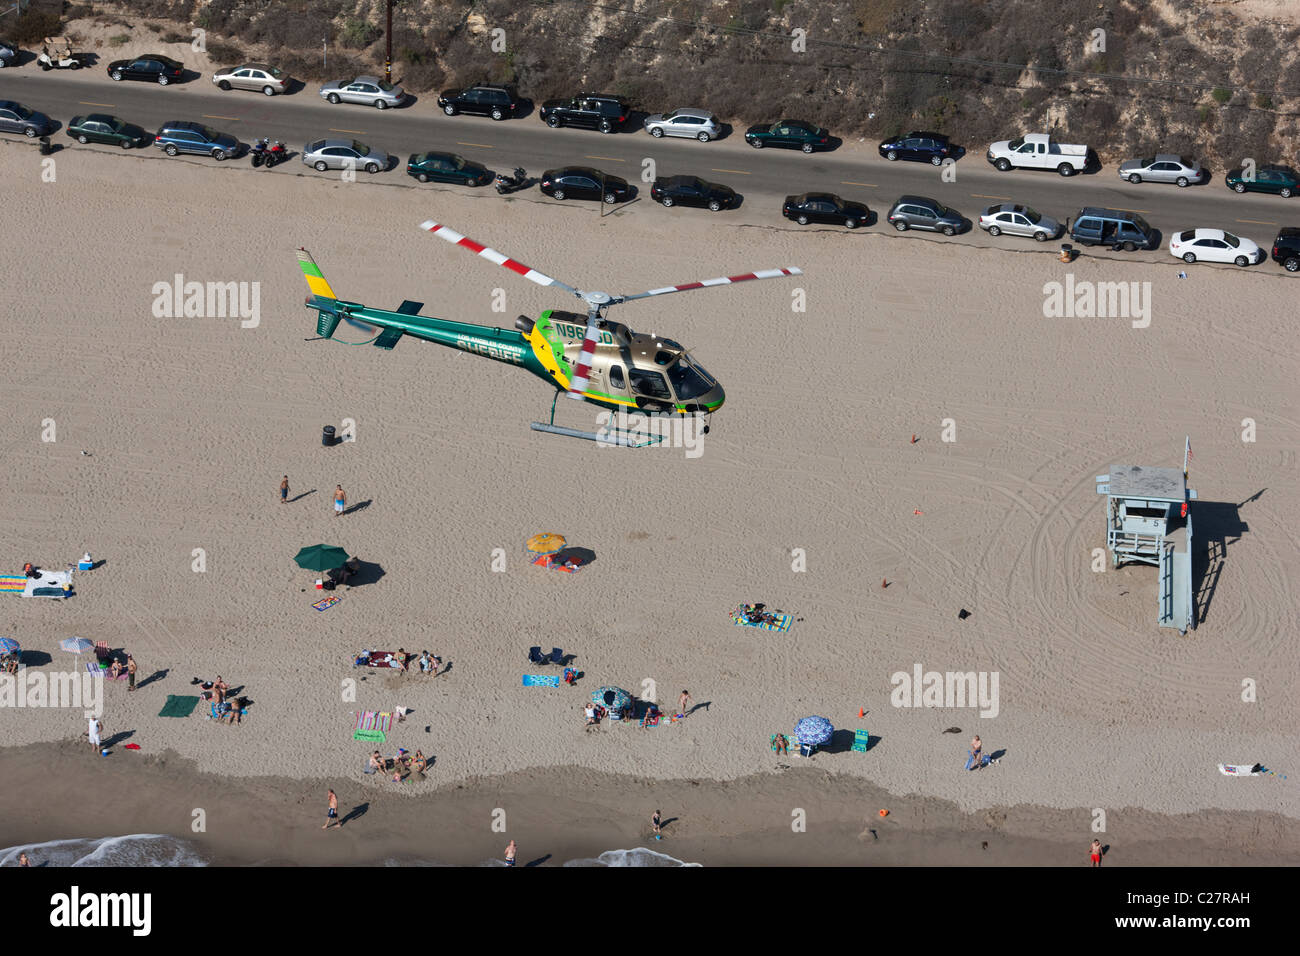 LOS ANGELES SHERIFF DEPARTMENT'S HELICOPTER (aerial view). Helicopter (as350 Eurocopter) patrolling the Malibu - Stock Image